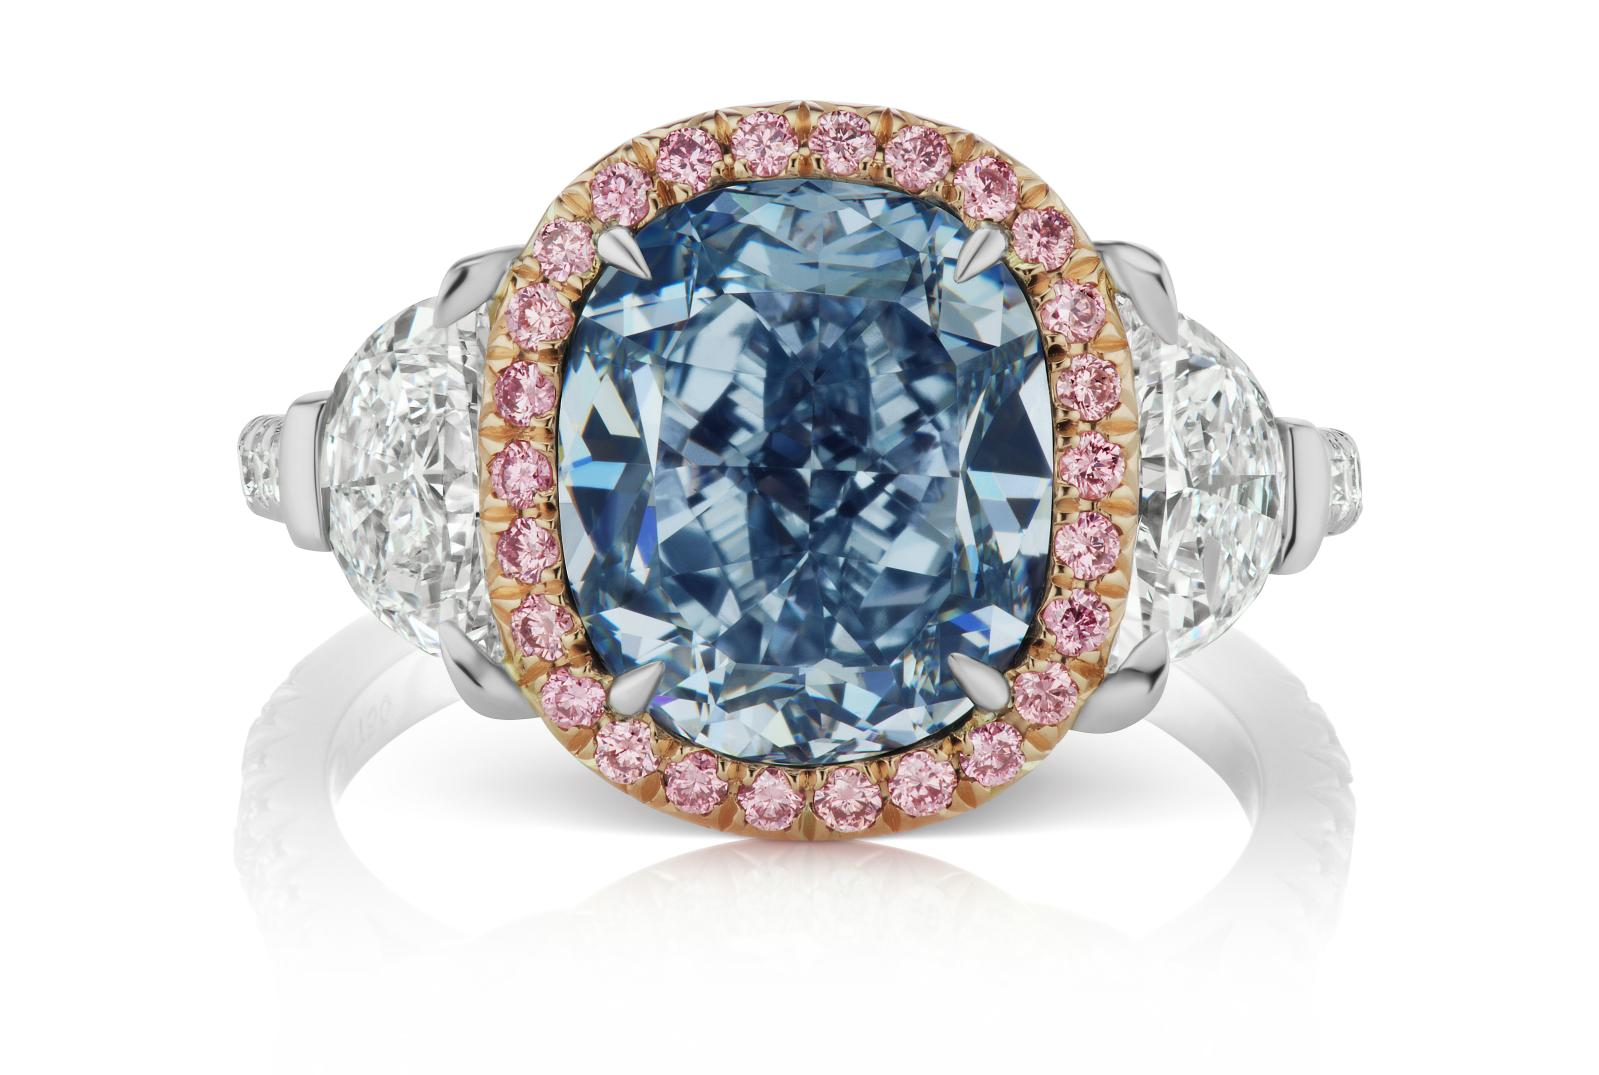 L. J. West, oval diamond ring, 3.04 ct, fancy intense blue VS2 colour, set with two half-moon diamonds surrounded by pink diamonds, presented last Apr